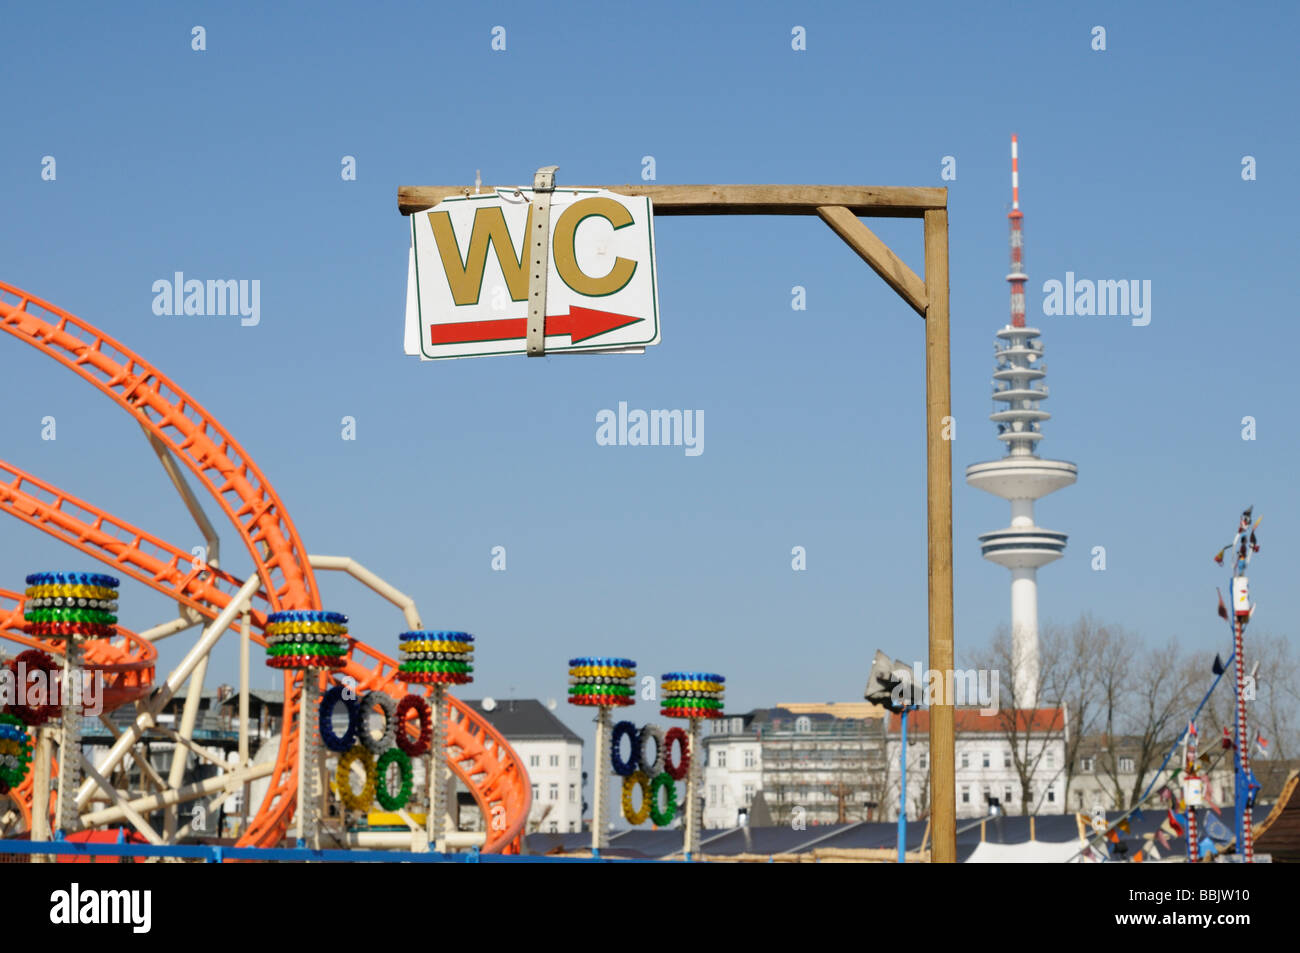 lustiges wc schild hamburger dom deutschland lustige wc schild hamburg dom deutschland stockfoto. Black Bedroom Furniture Sets. Home Design Ideas